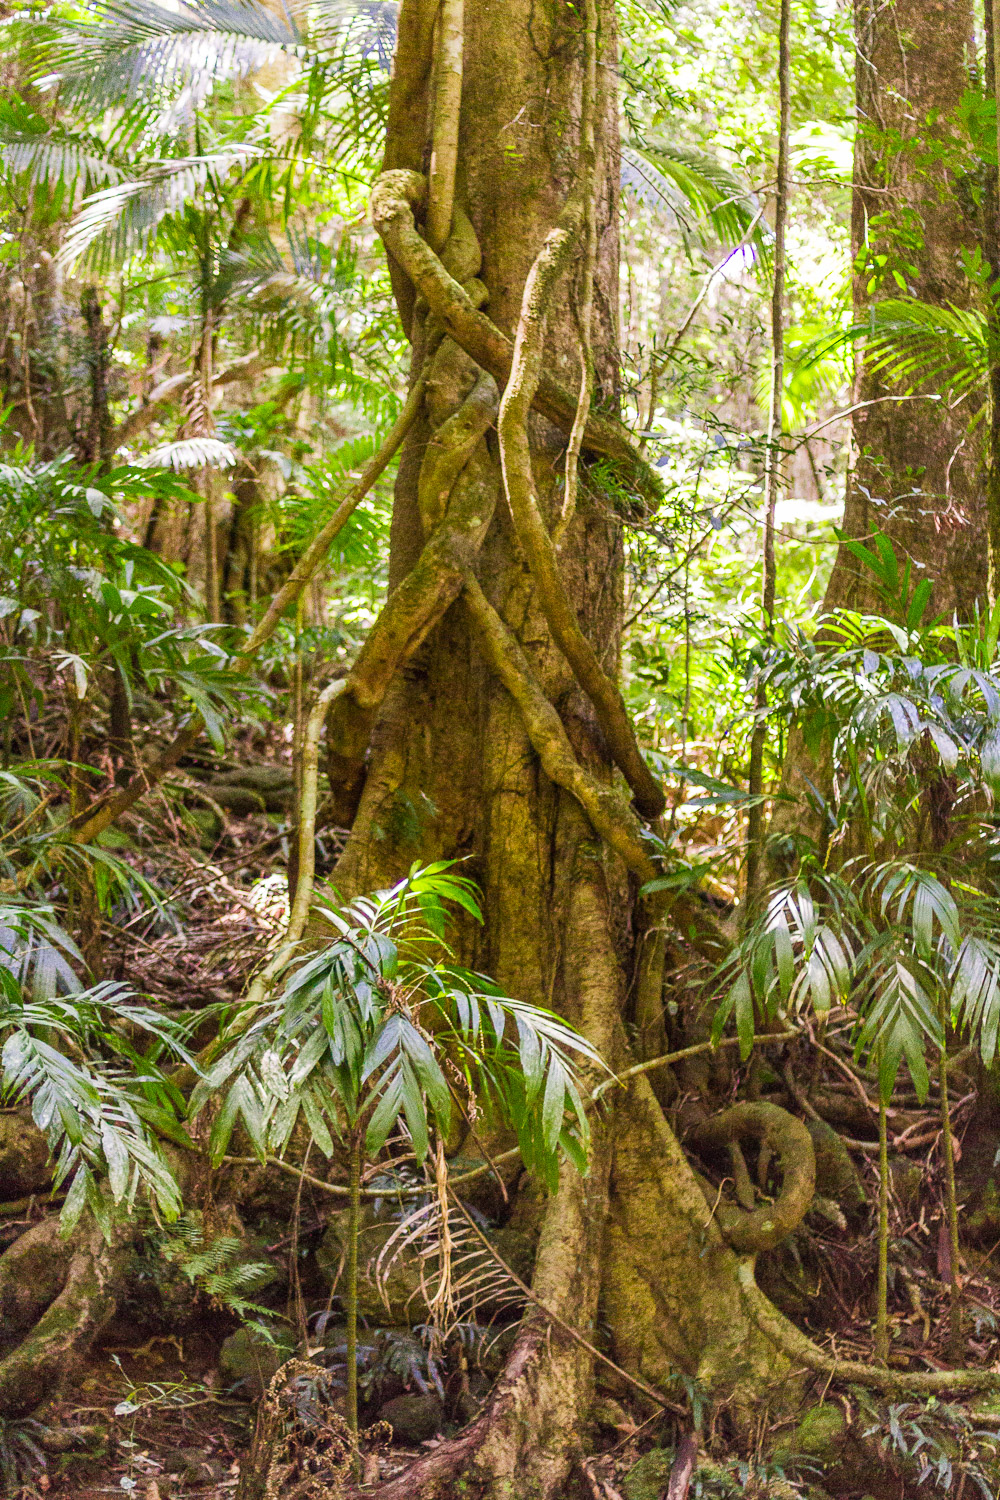 twisted tree with vines growing around the trunk rainforest australia